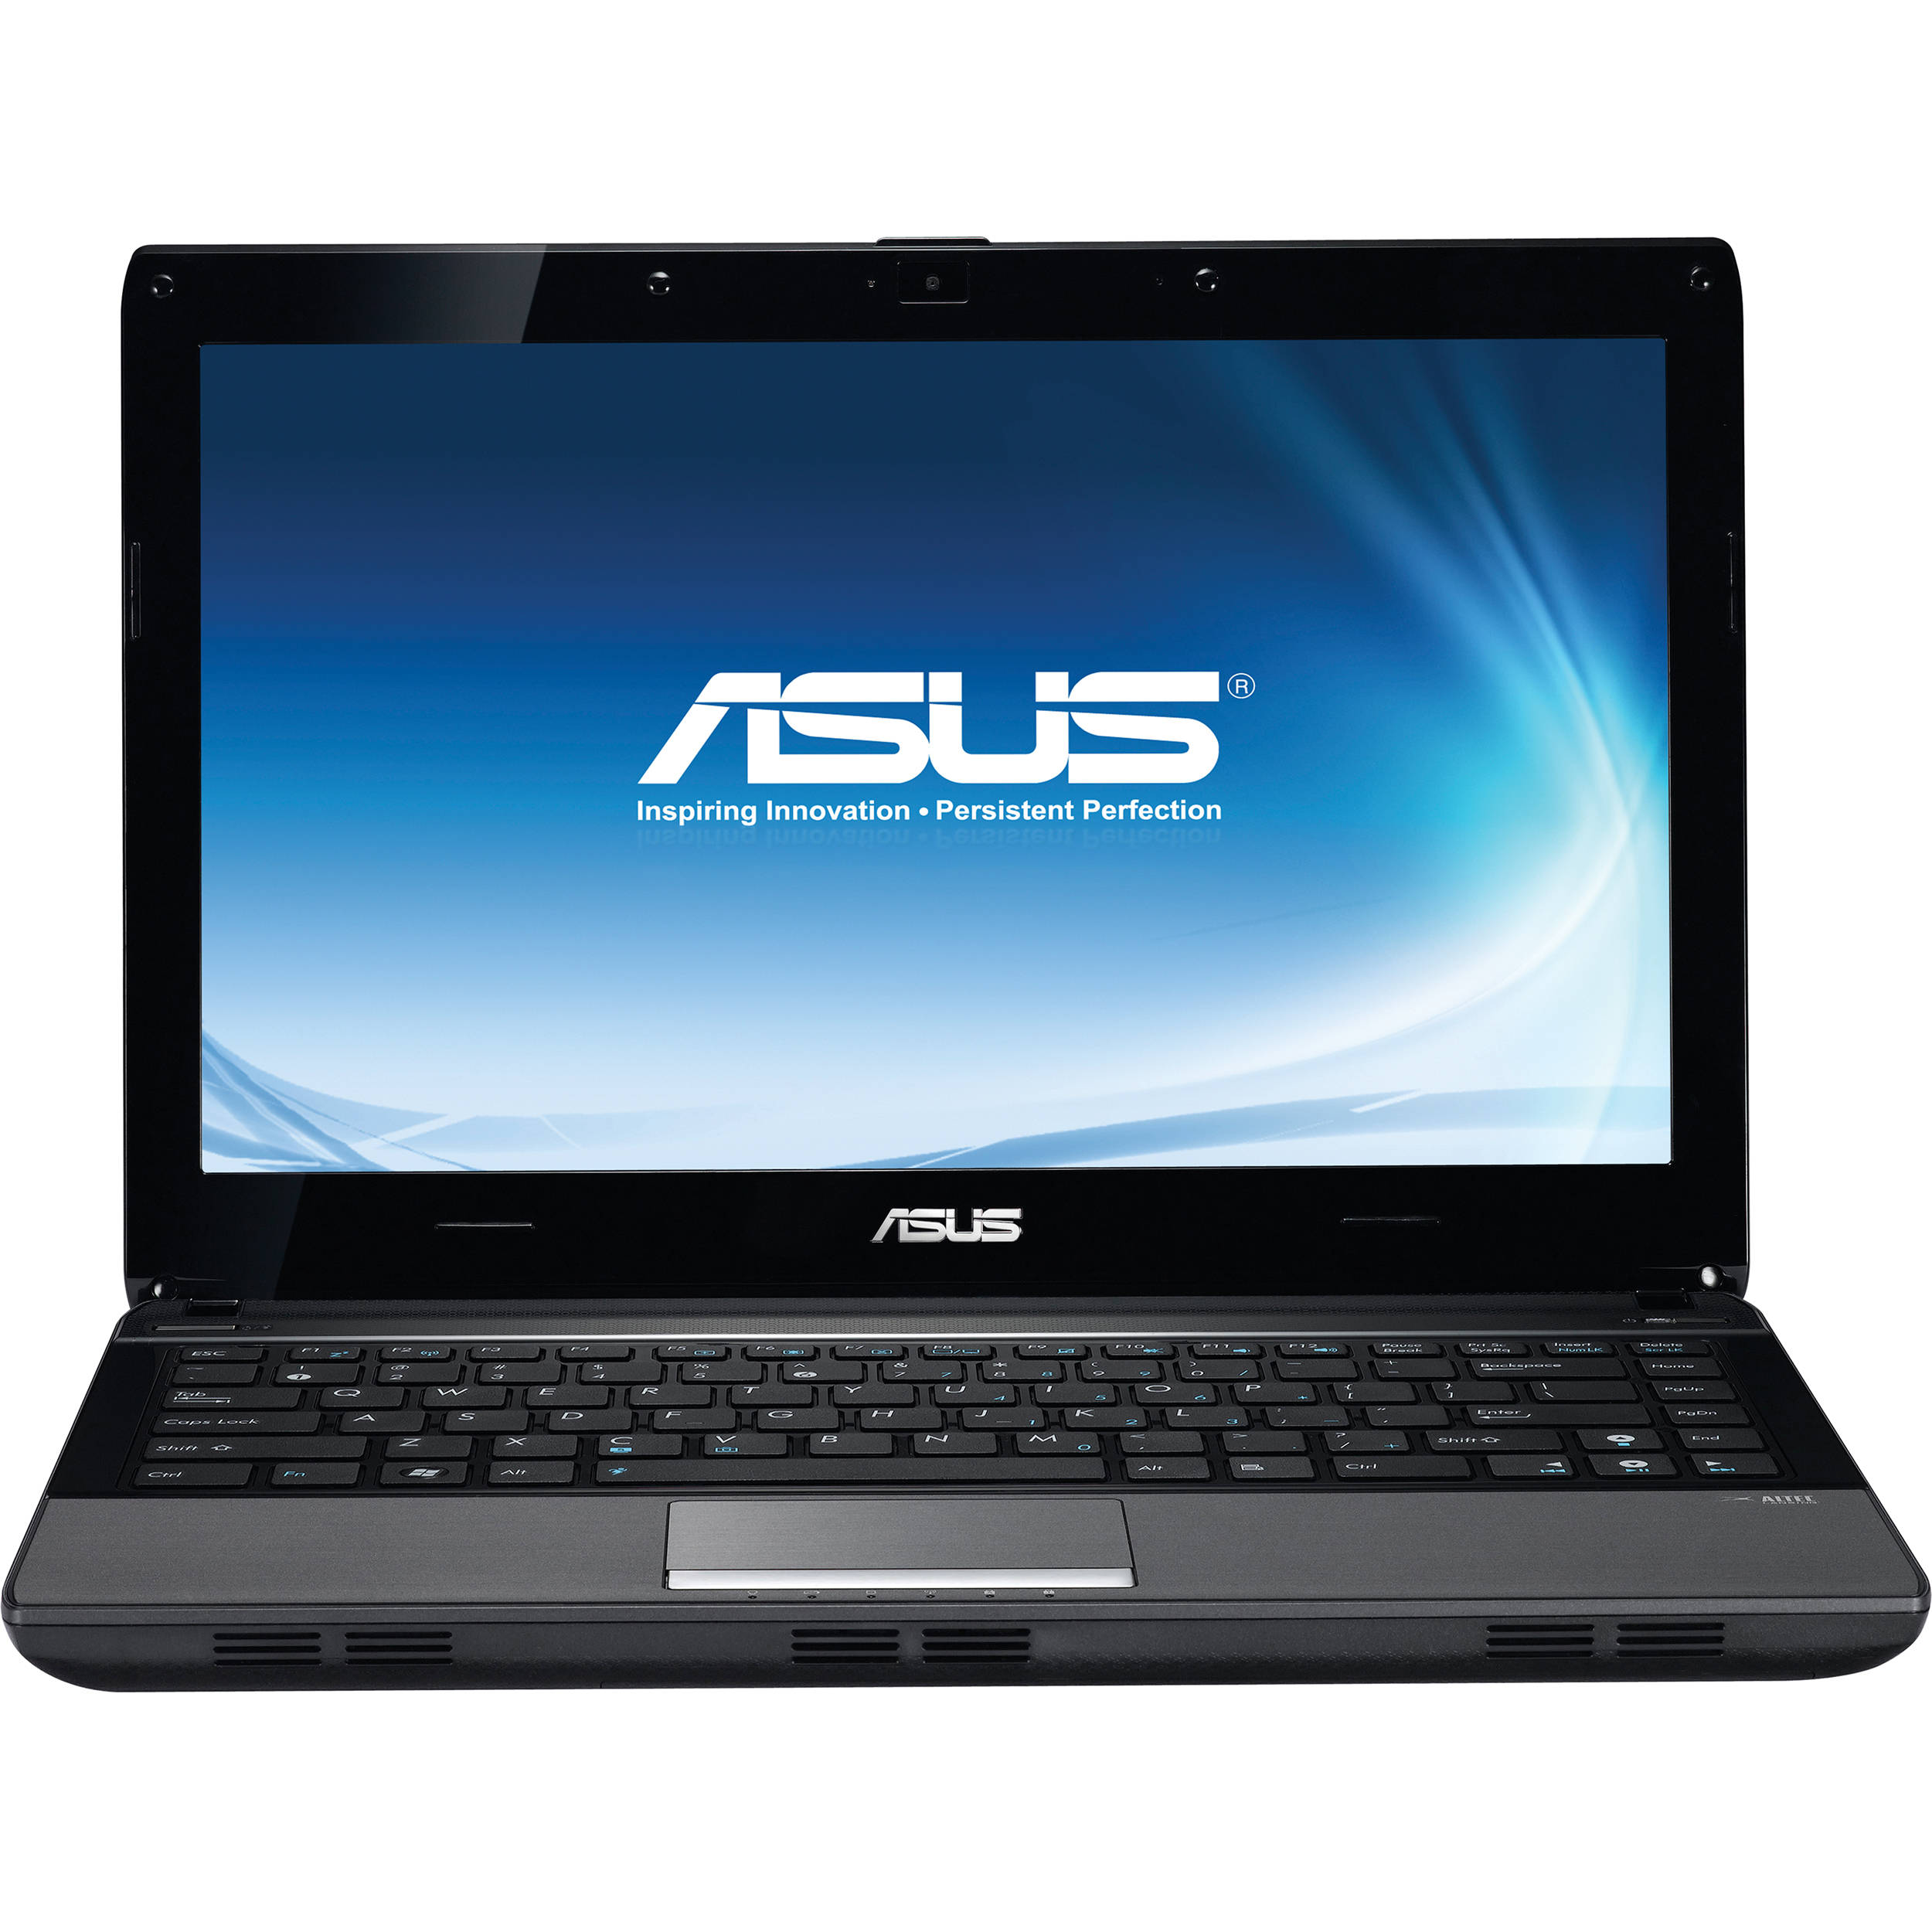 ASUS U31SD INTEL MANAGEMENT WINDOWS DRIVER